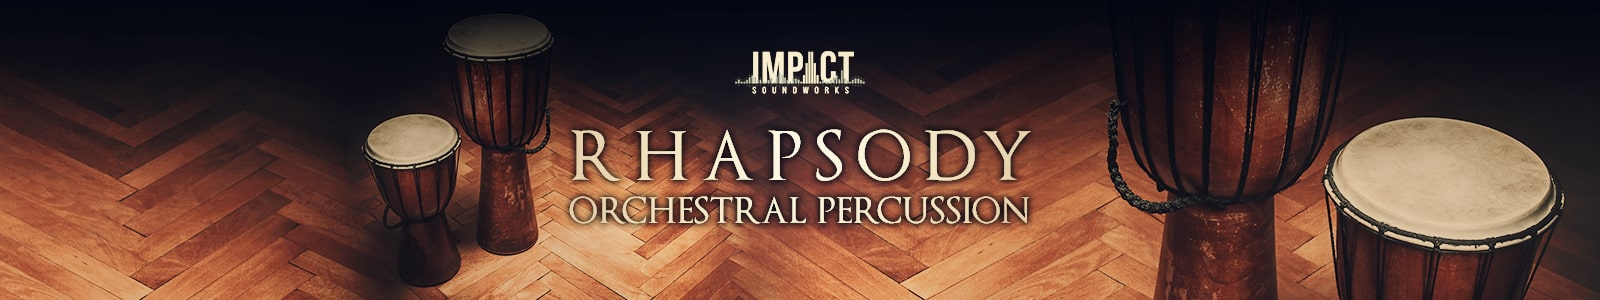 rhapsody orchestral percussion by impact soundworks